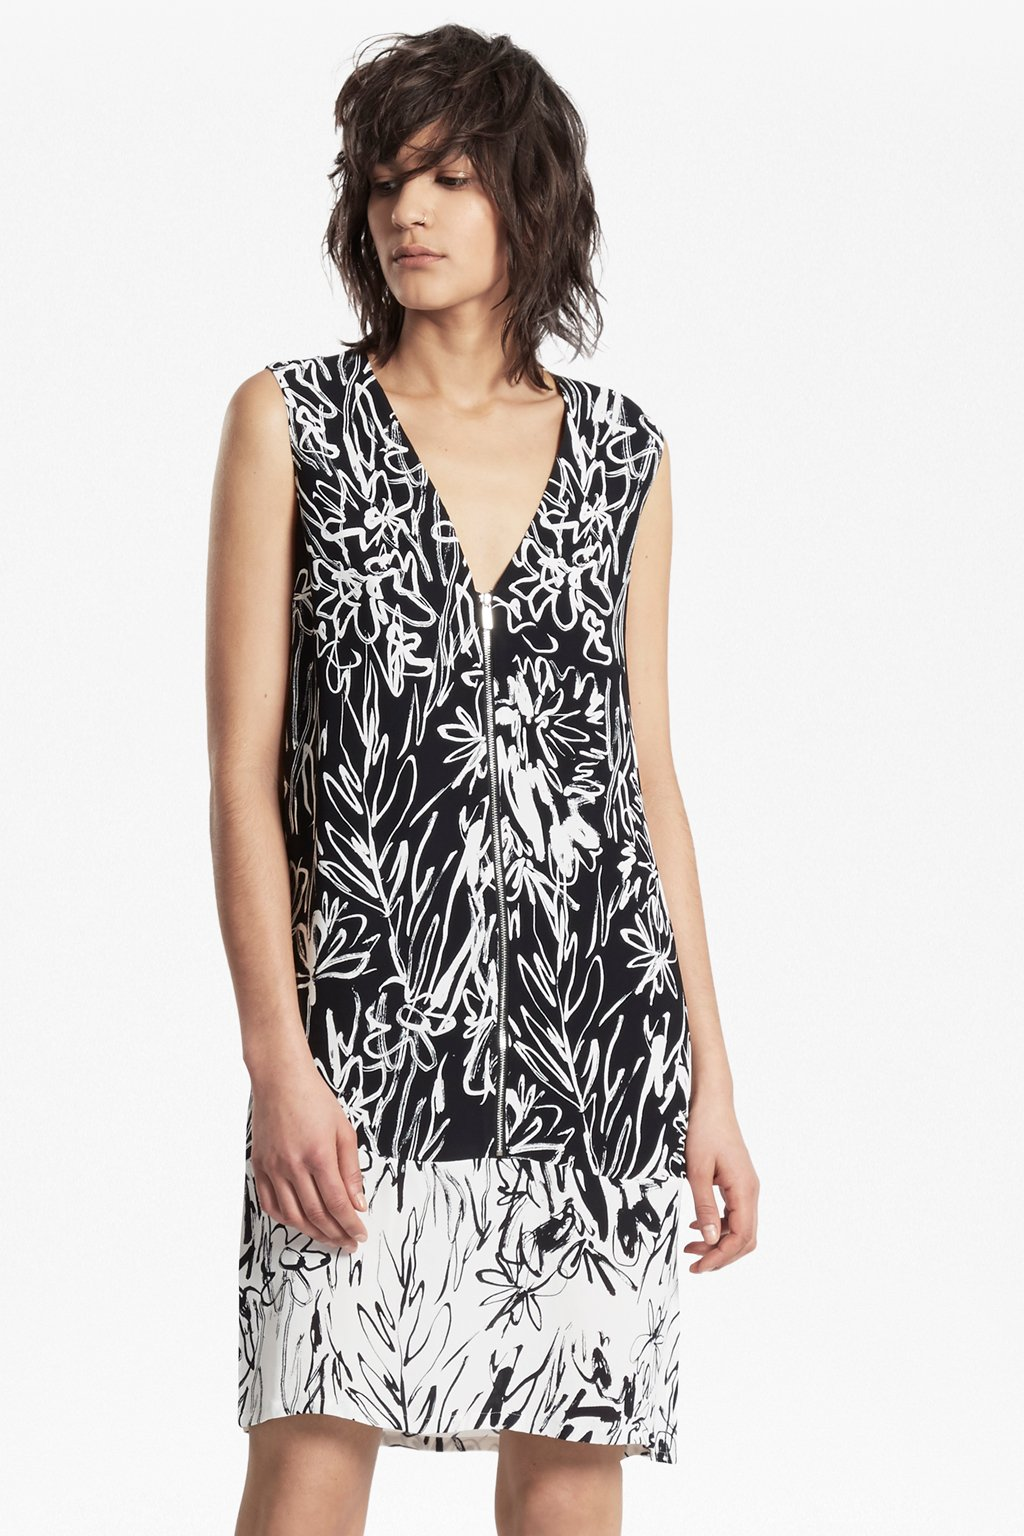 Copley Crepe Print Shift Dress - Black/summer white French Connection